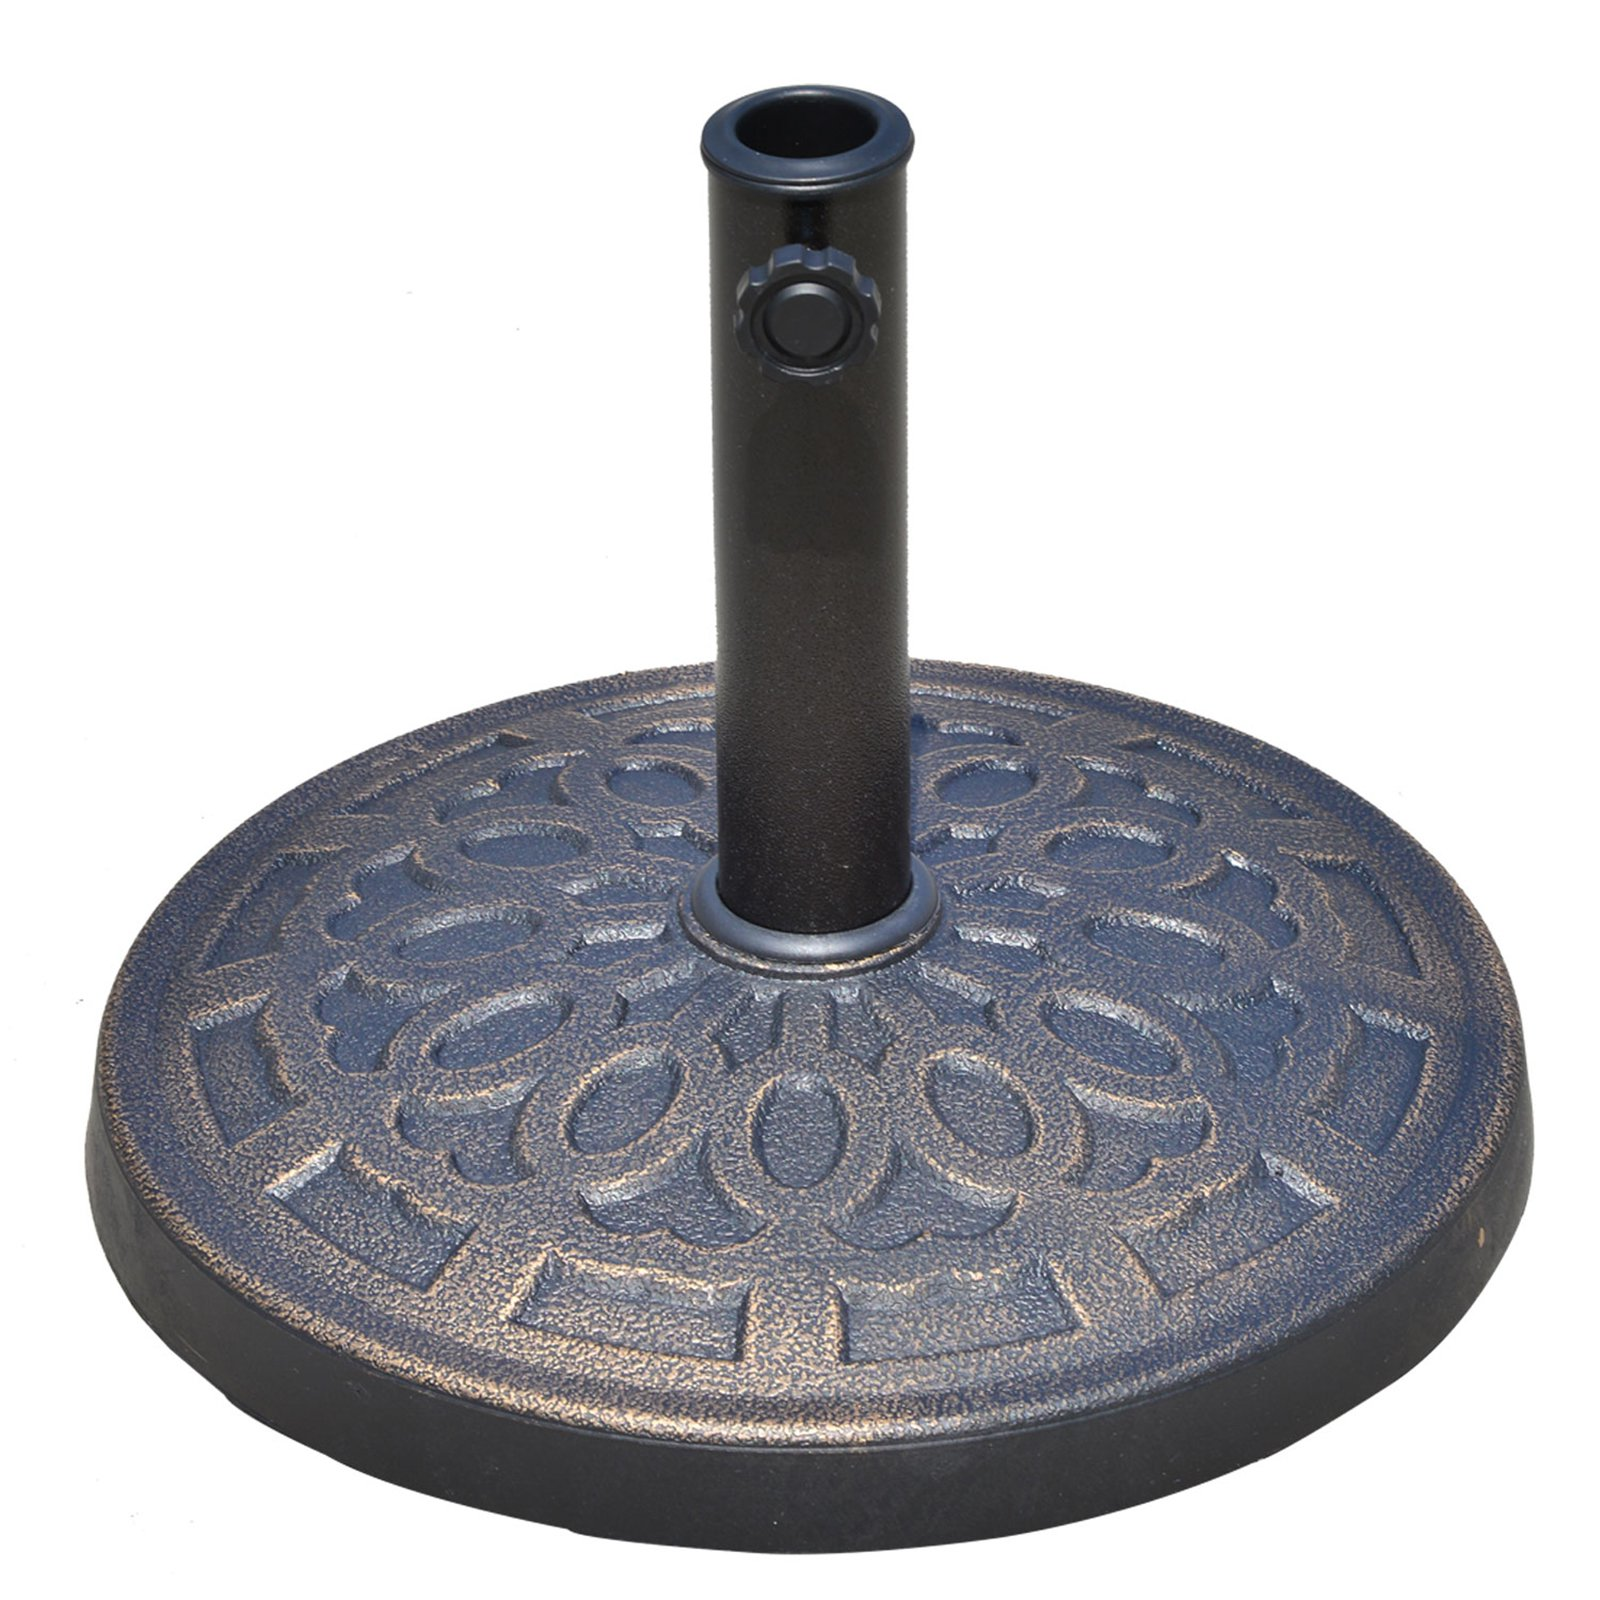 Outsunny 27-lb. Round Decorative Spiral Umbrella Stand